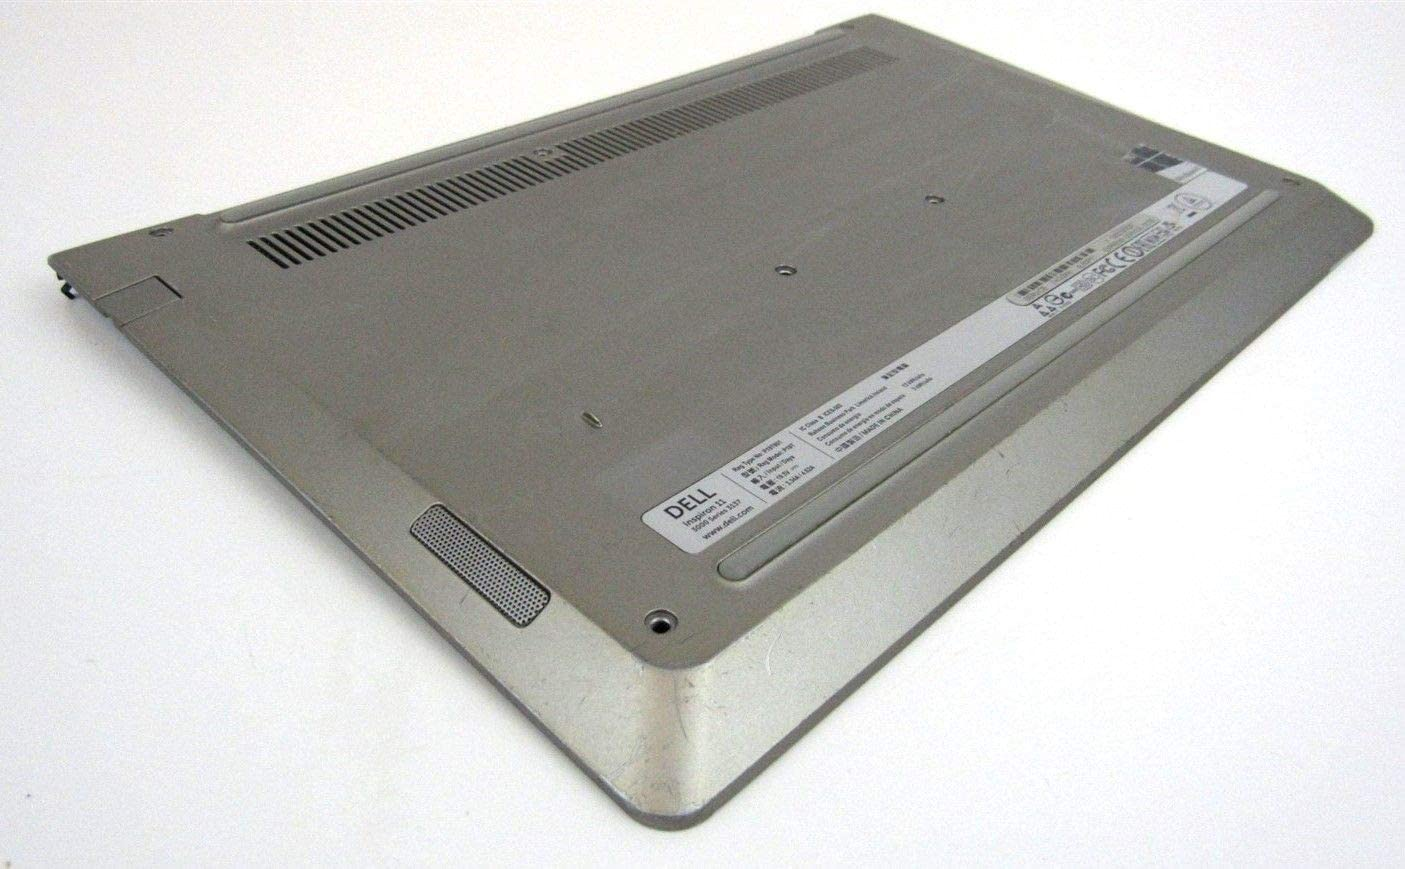 361YW - New - Dell Inspiron 11 3135 3137 3138 Bottom Base Cover Assembly - 361YW